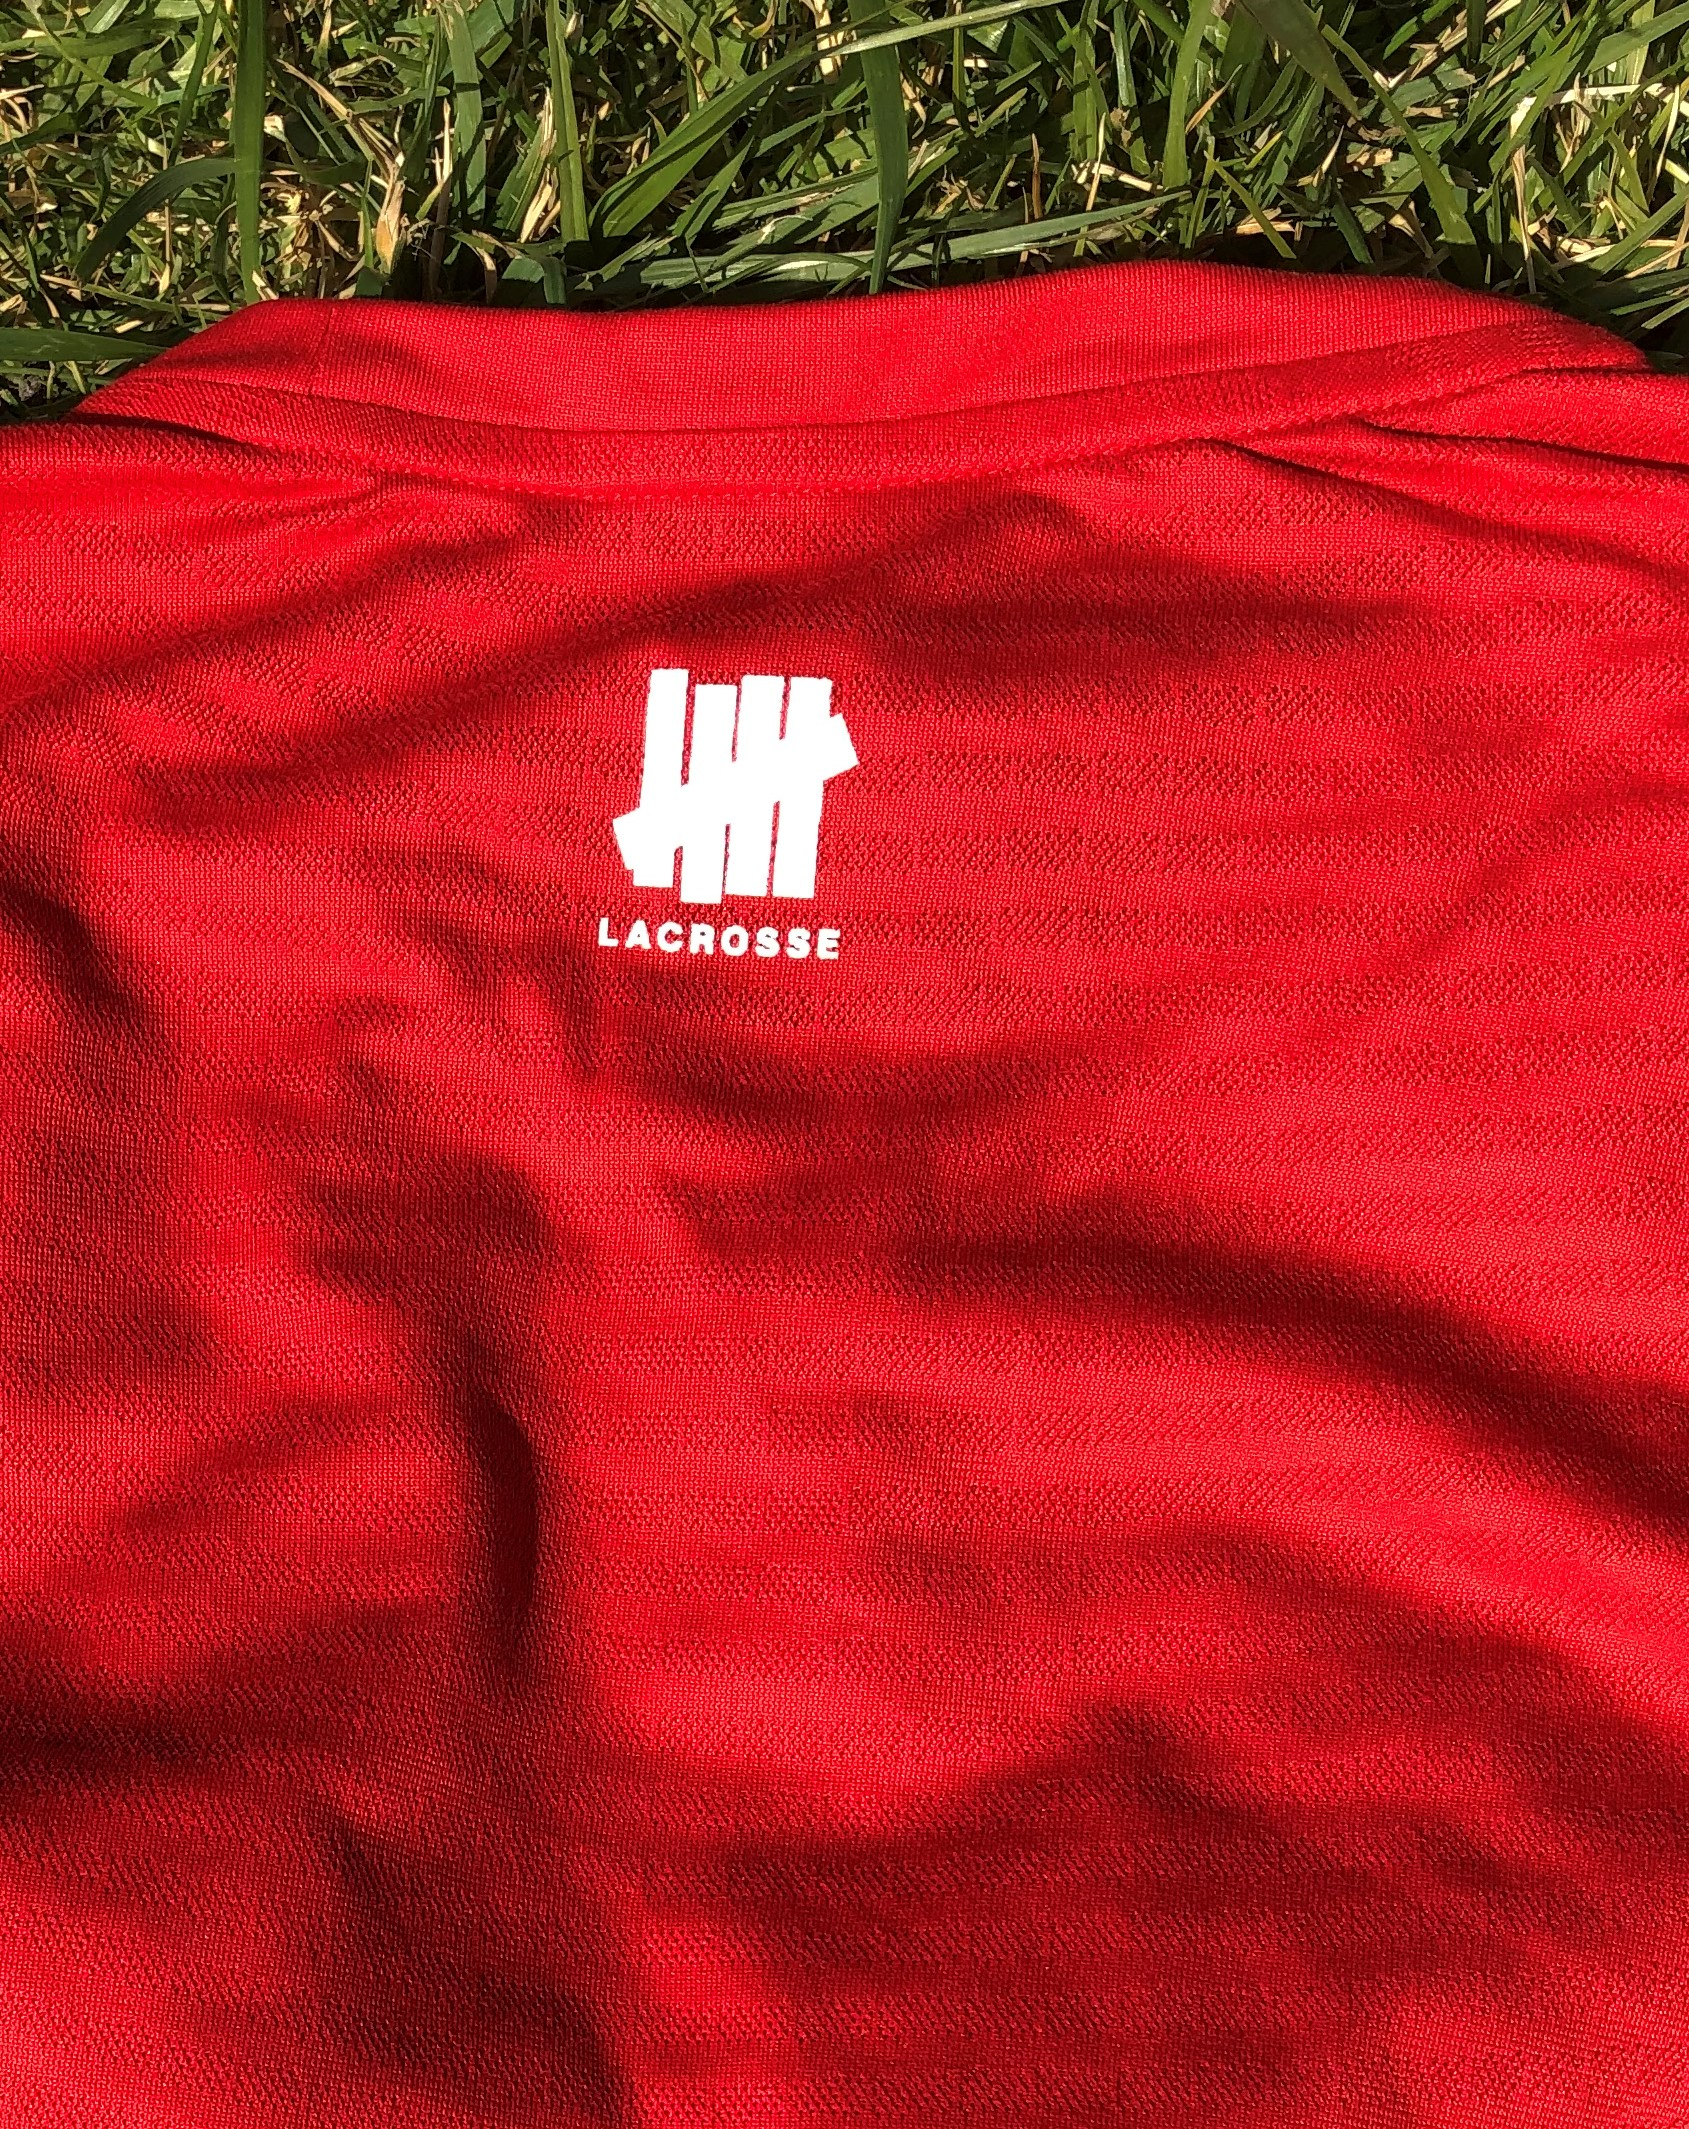 red shirt back with roman numeral logo